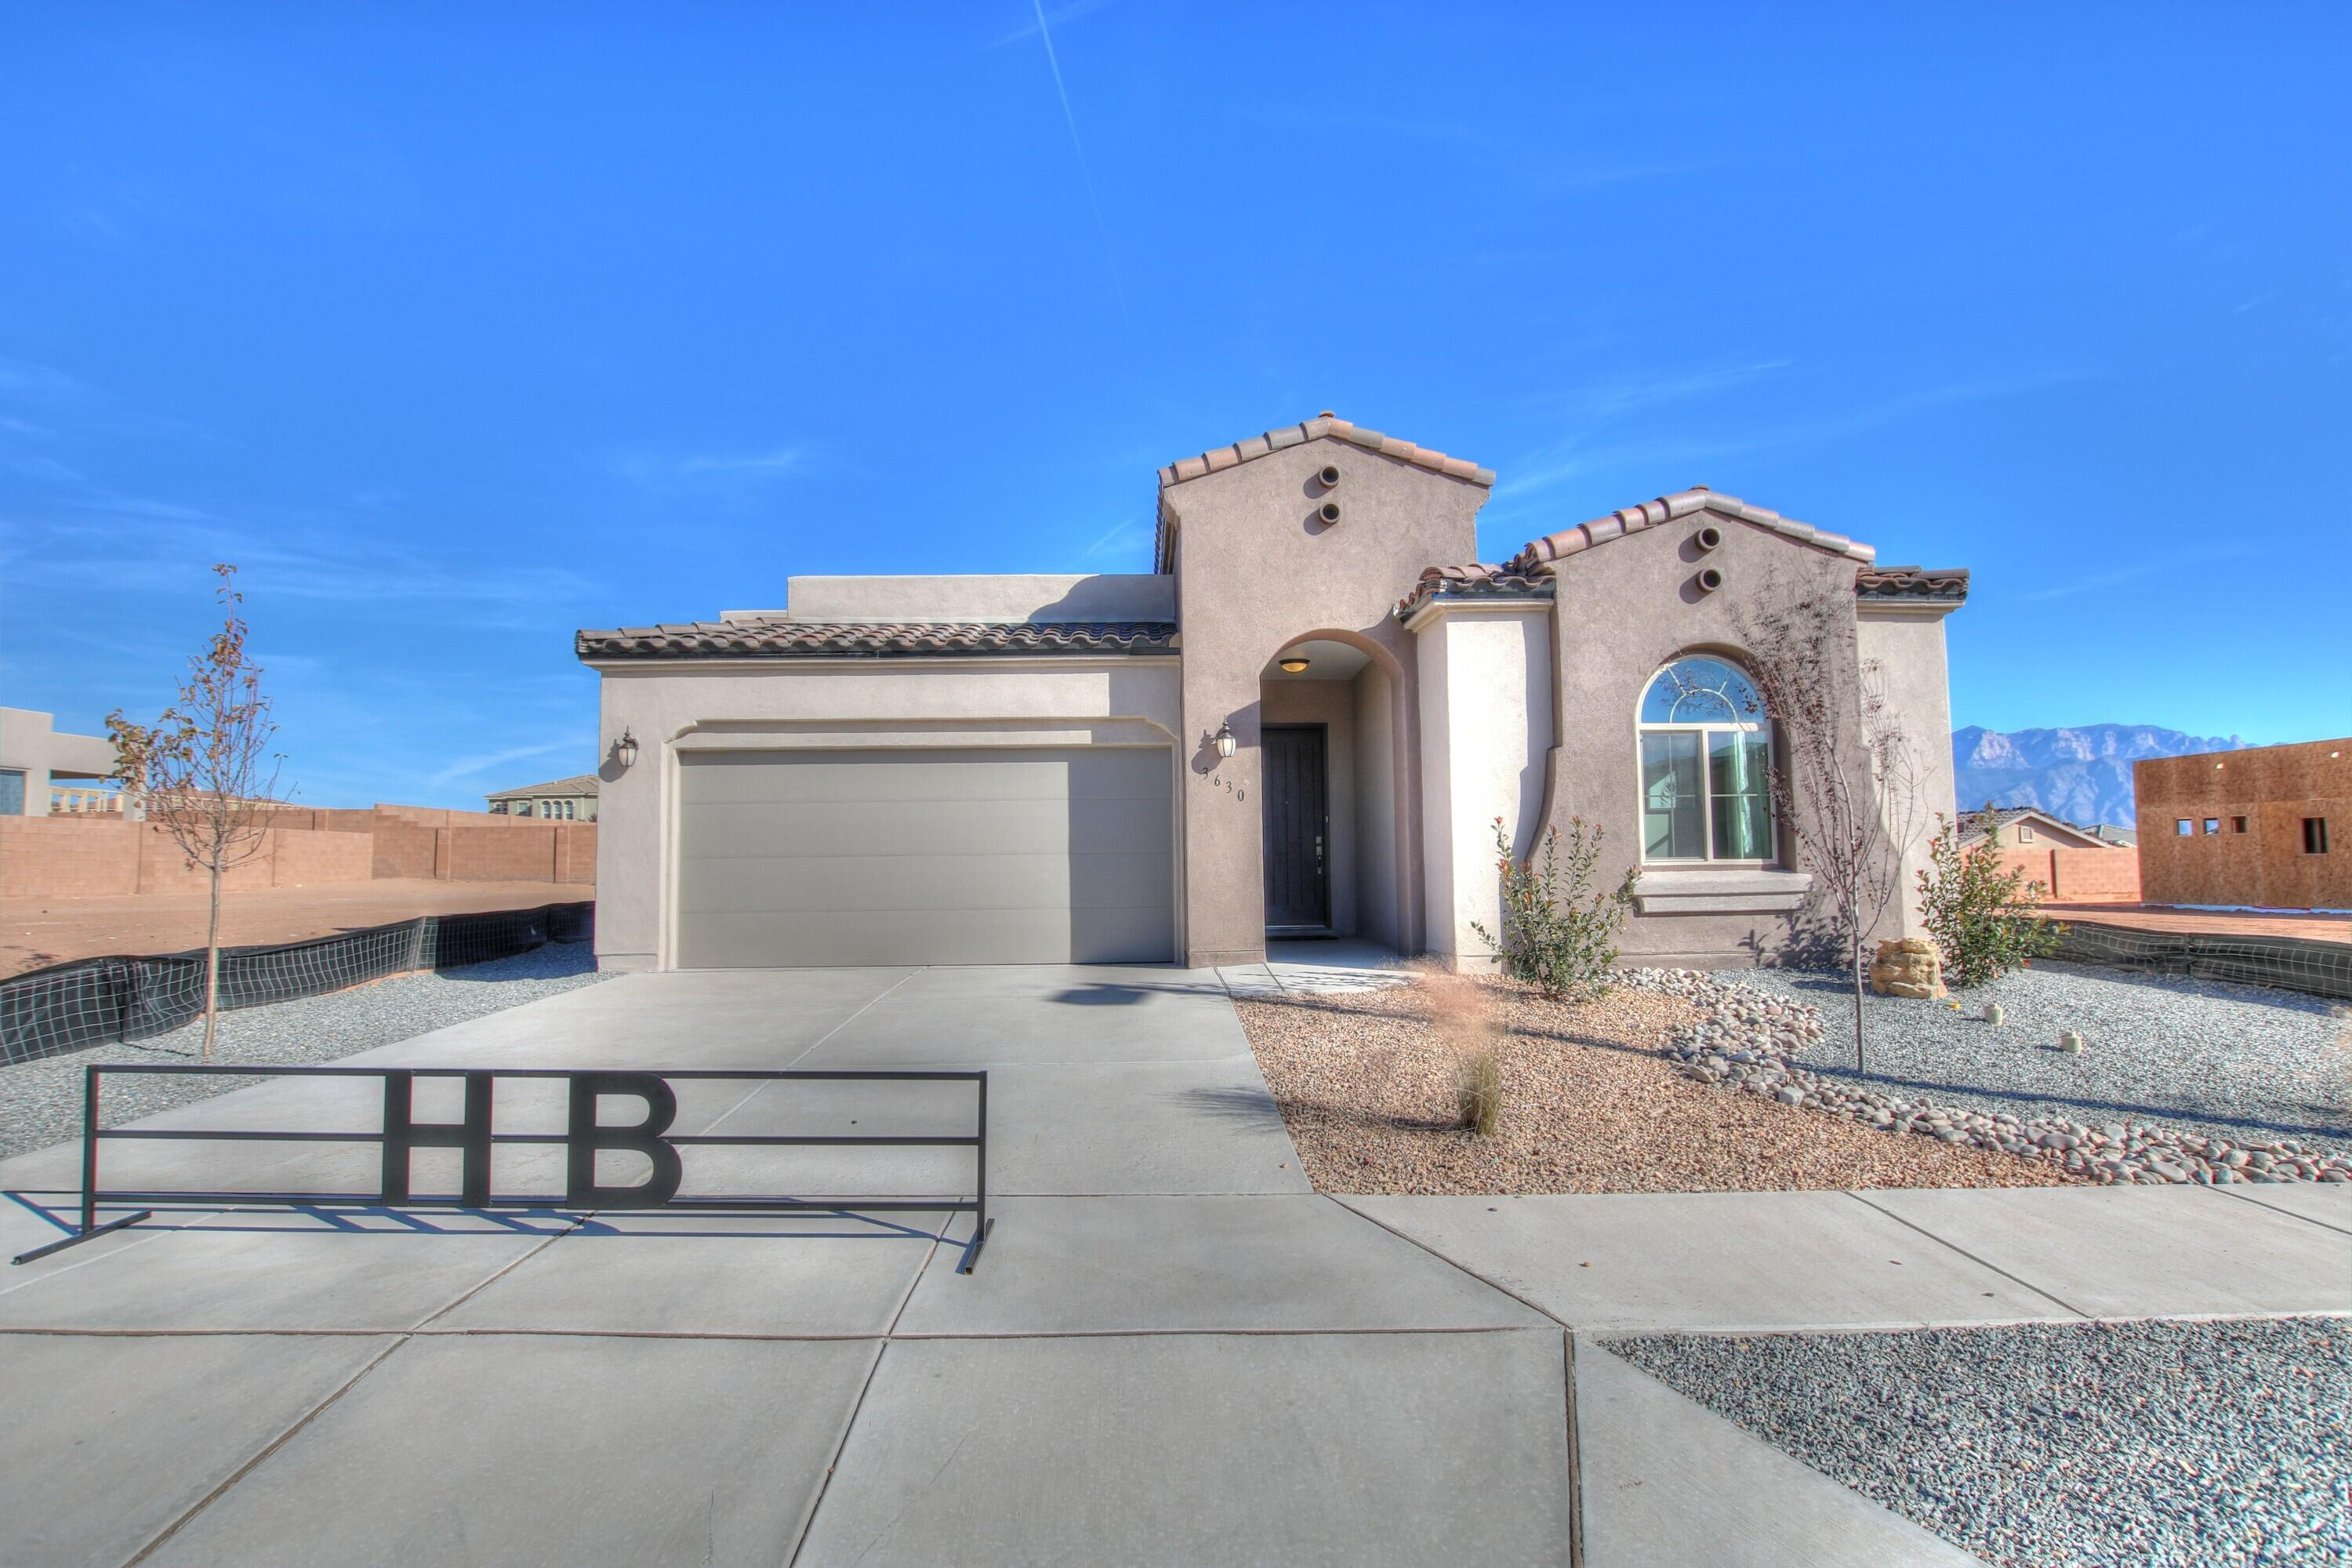 2119 sf 2 car garage 3 br 2.5 bath.  Study.  8' doors, gourmet kitchen with farm sink; tiled fireplace, rain shower head in master, upgraded tile in all wet areas and great room, huge covered patioEstimated Completion date 01-01-2022(photos are not of actual home but represent the floor plan)